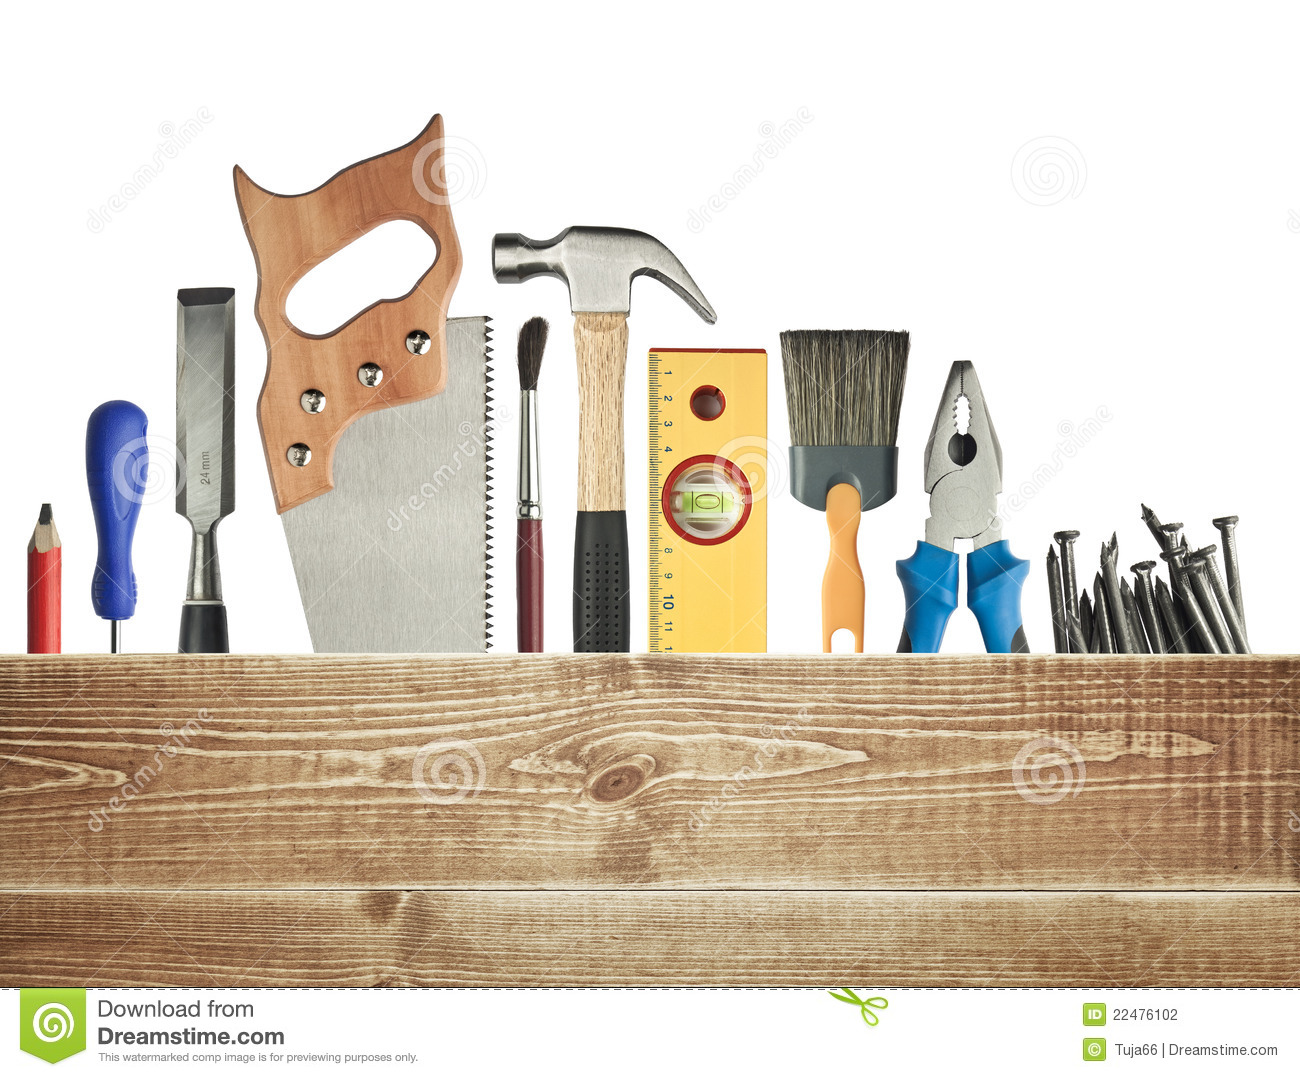 Carpentry background - photo#3